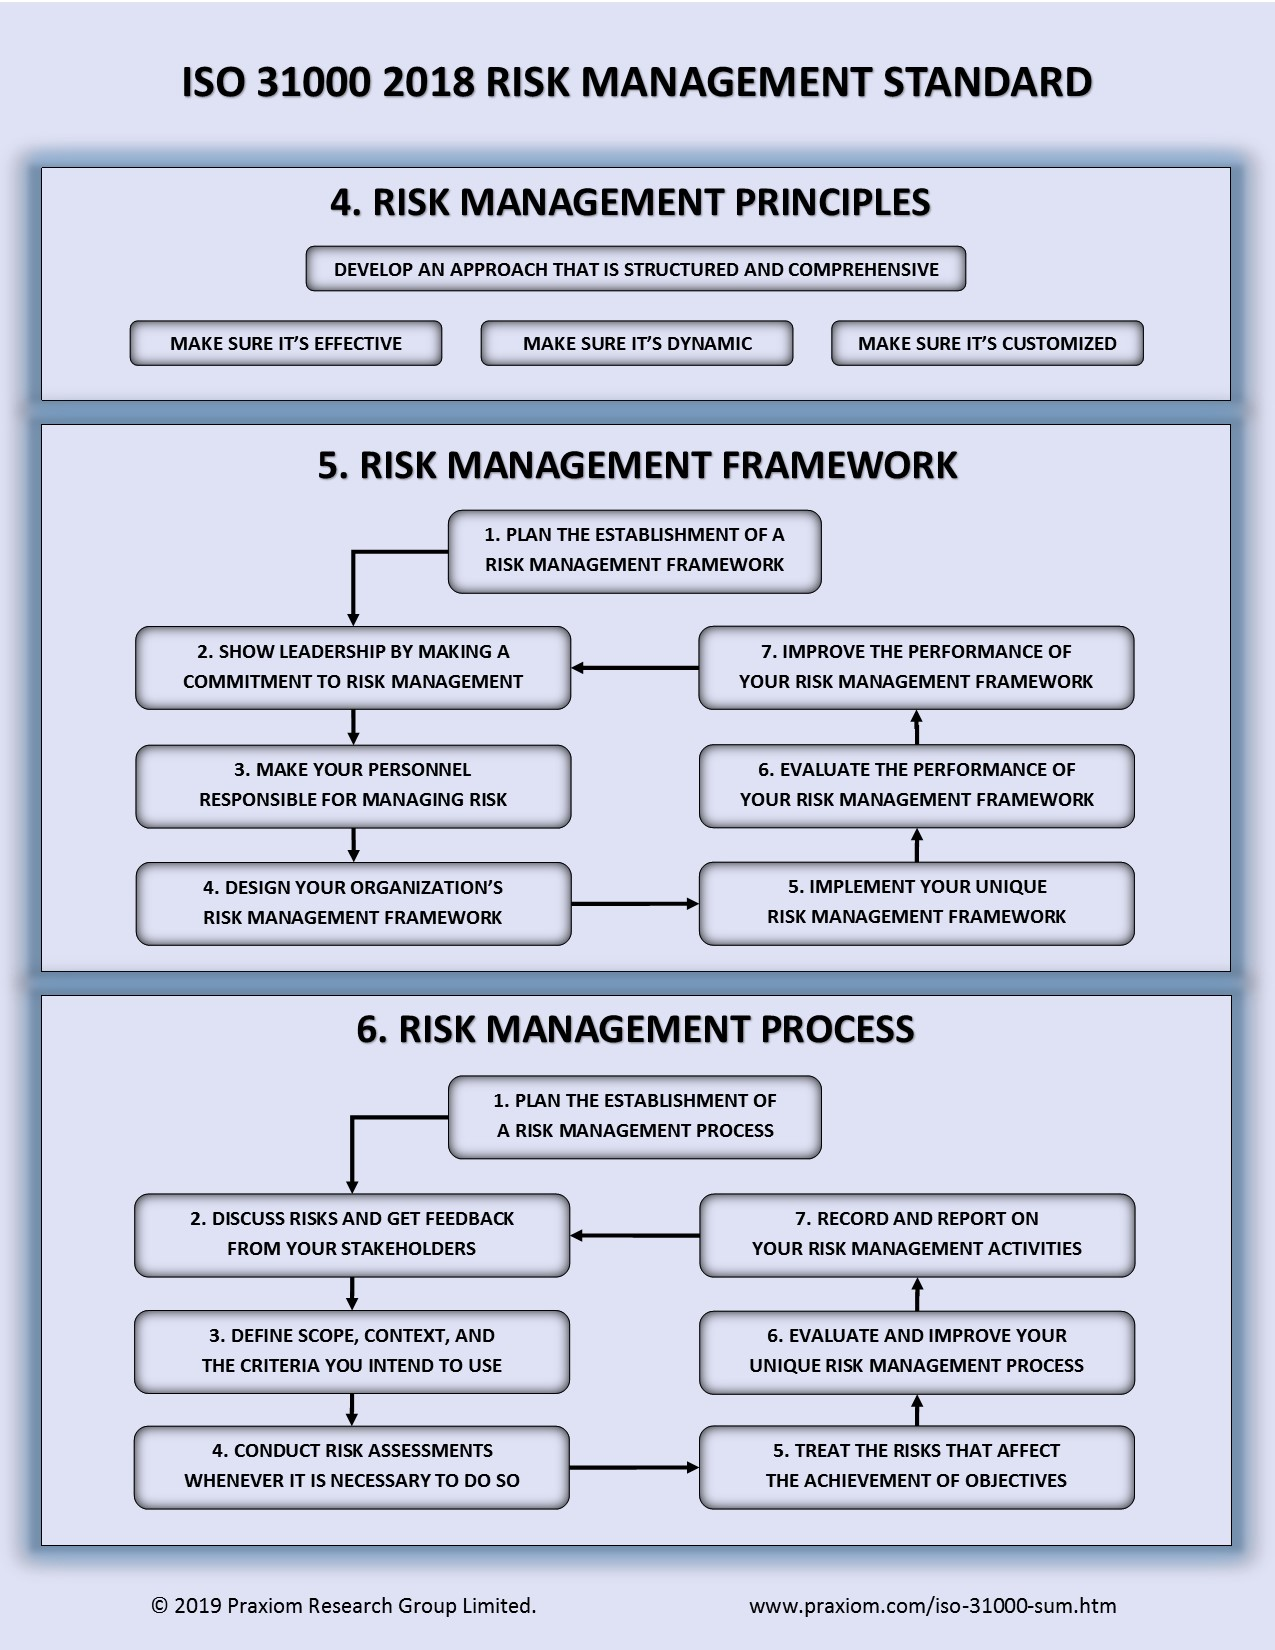 Overview of ISO 31000 2018 Risk Management Standard